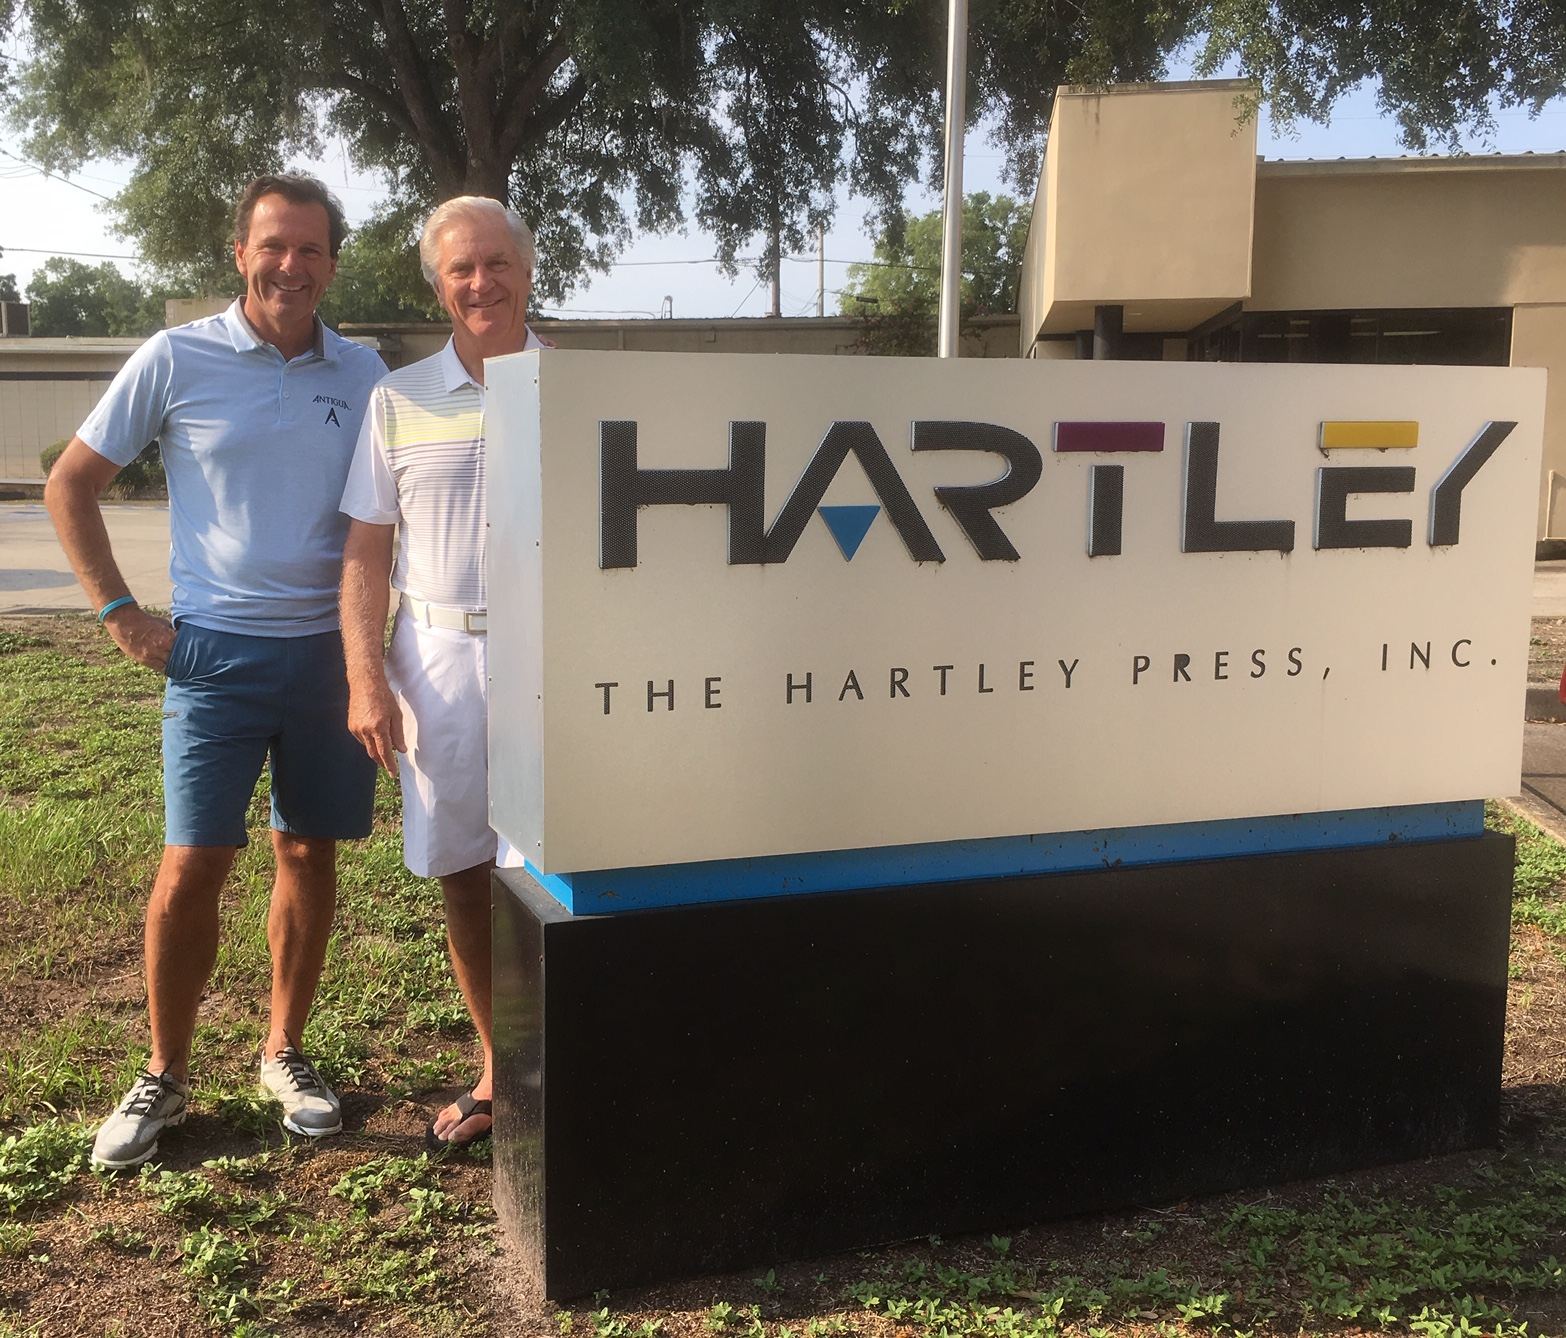 The Hartley Press - Hartley Press has been an outstanding sponsor of the Len Mattiace Foundation, providing full-service printing from its Jacksonville facility. We really appreciate all of their support over the years.